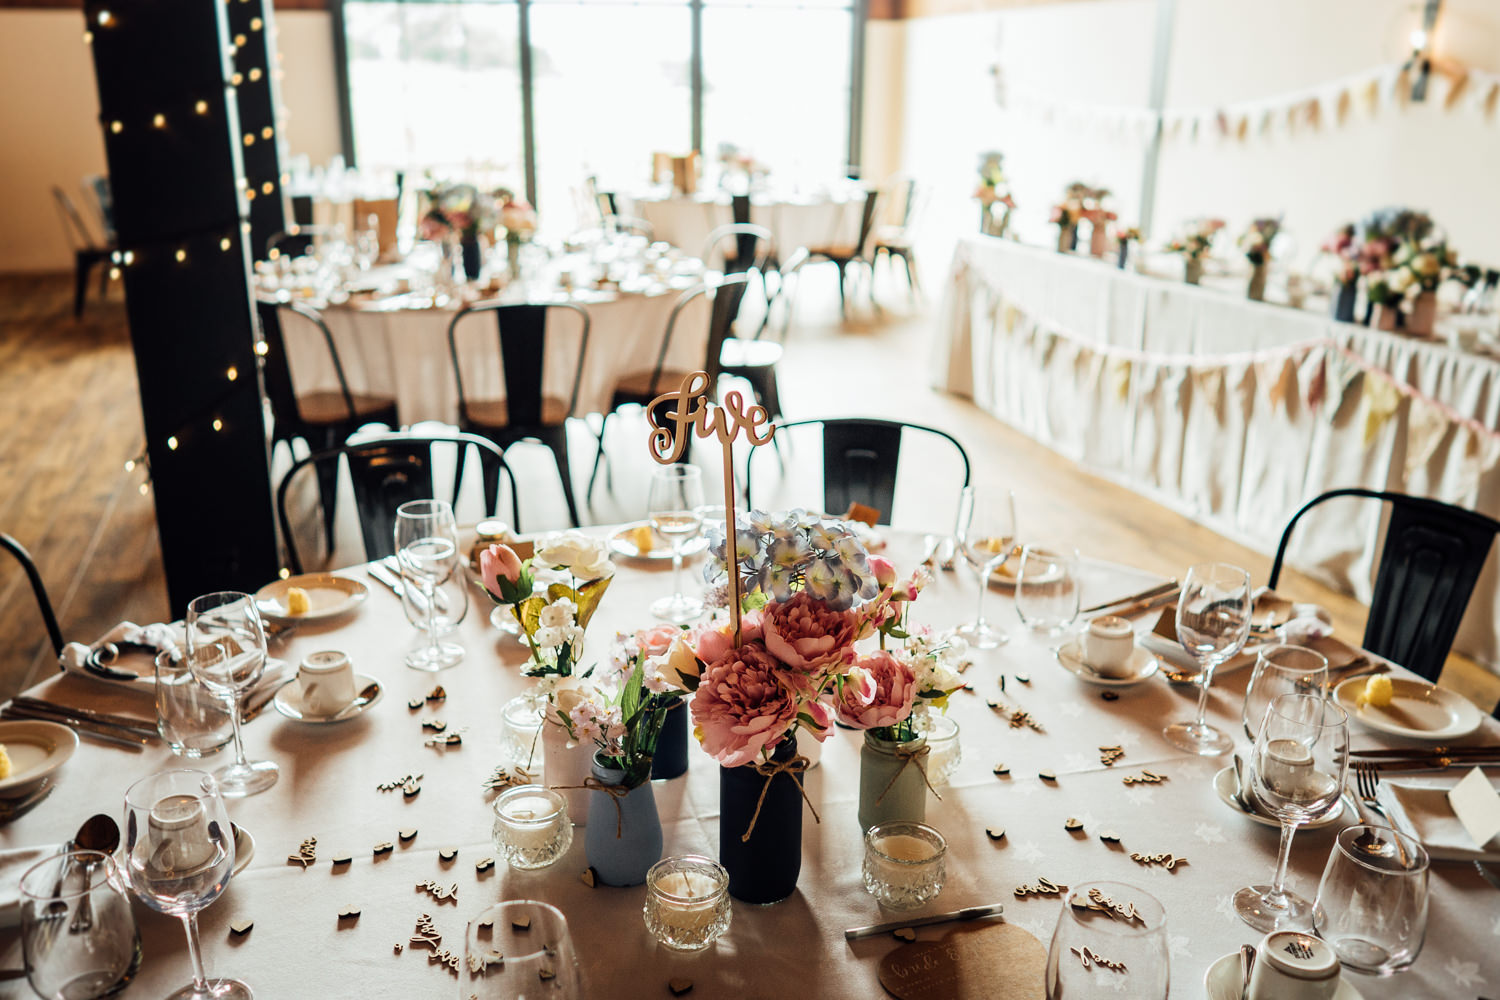 Decorated wedding breakfast tables